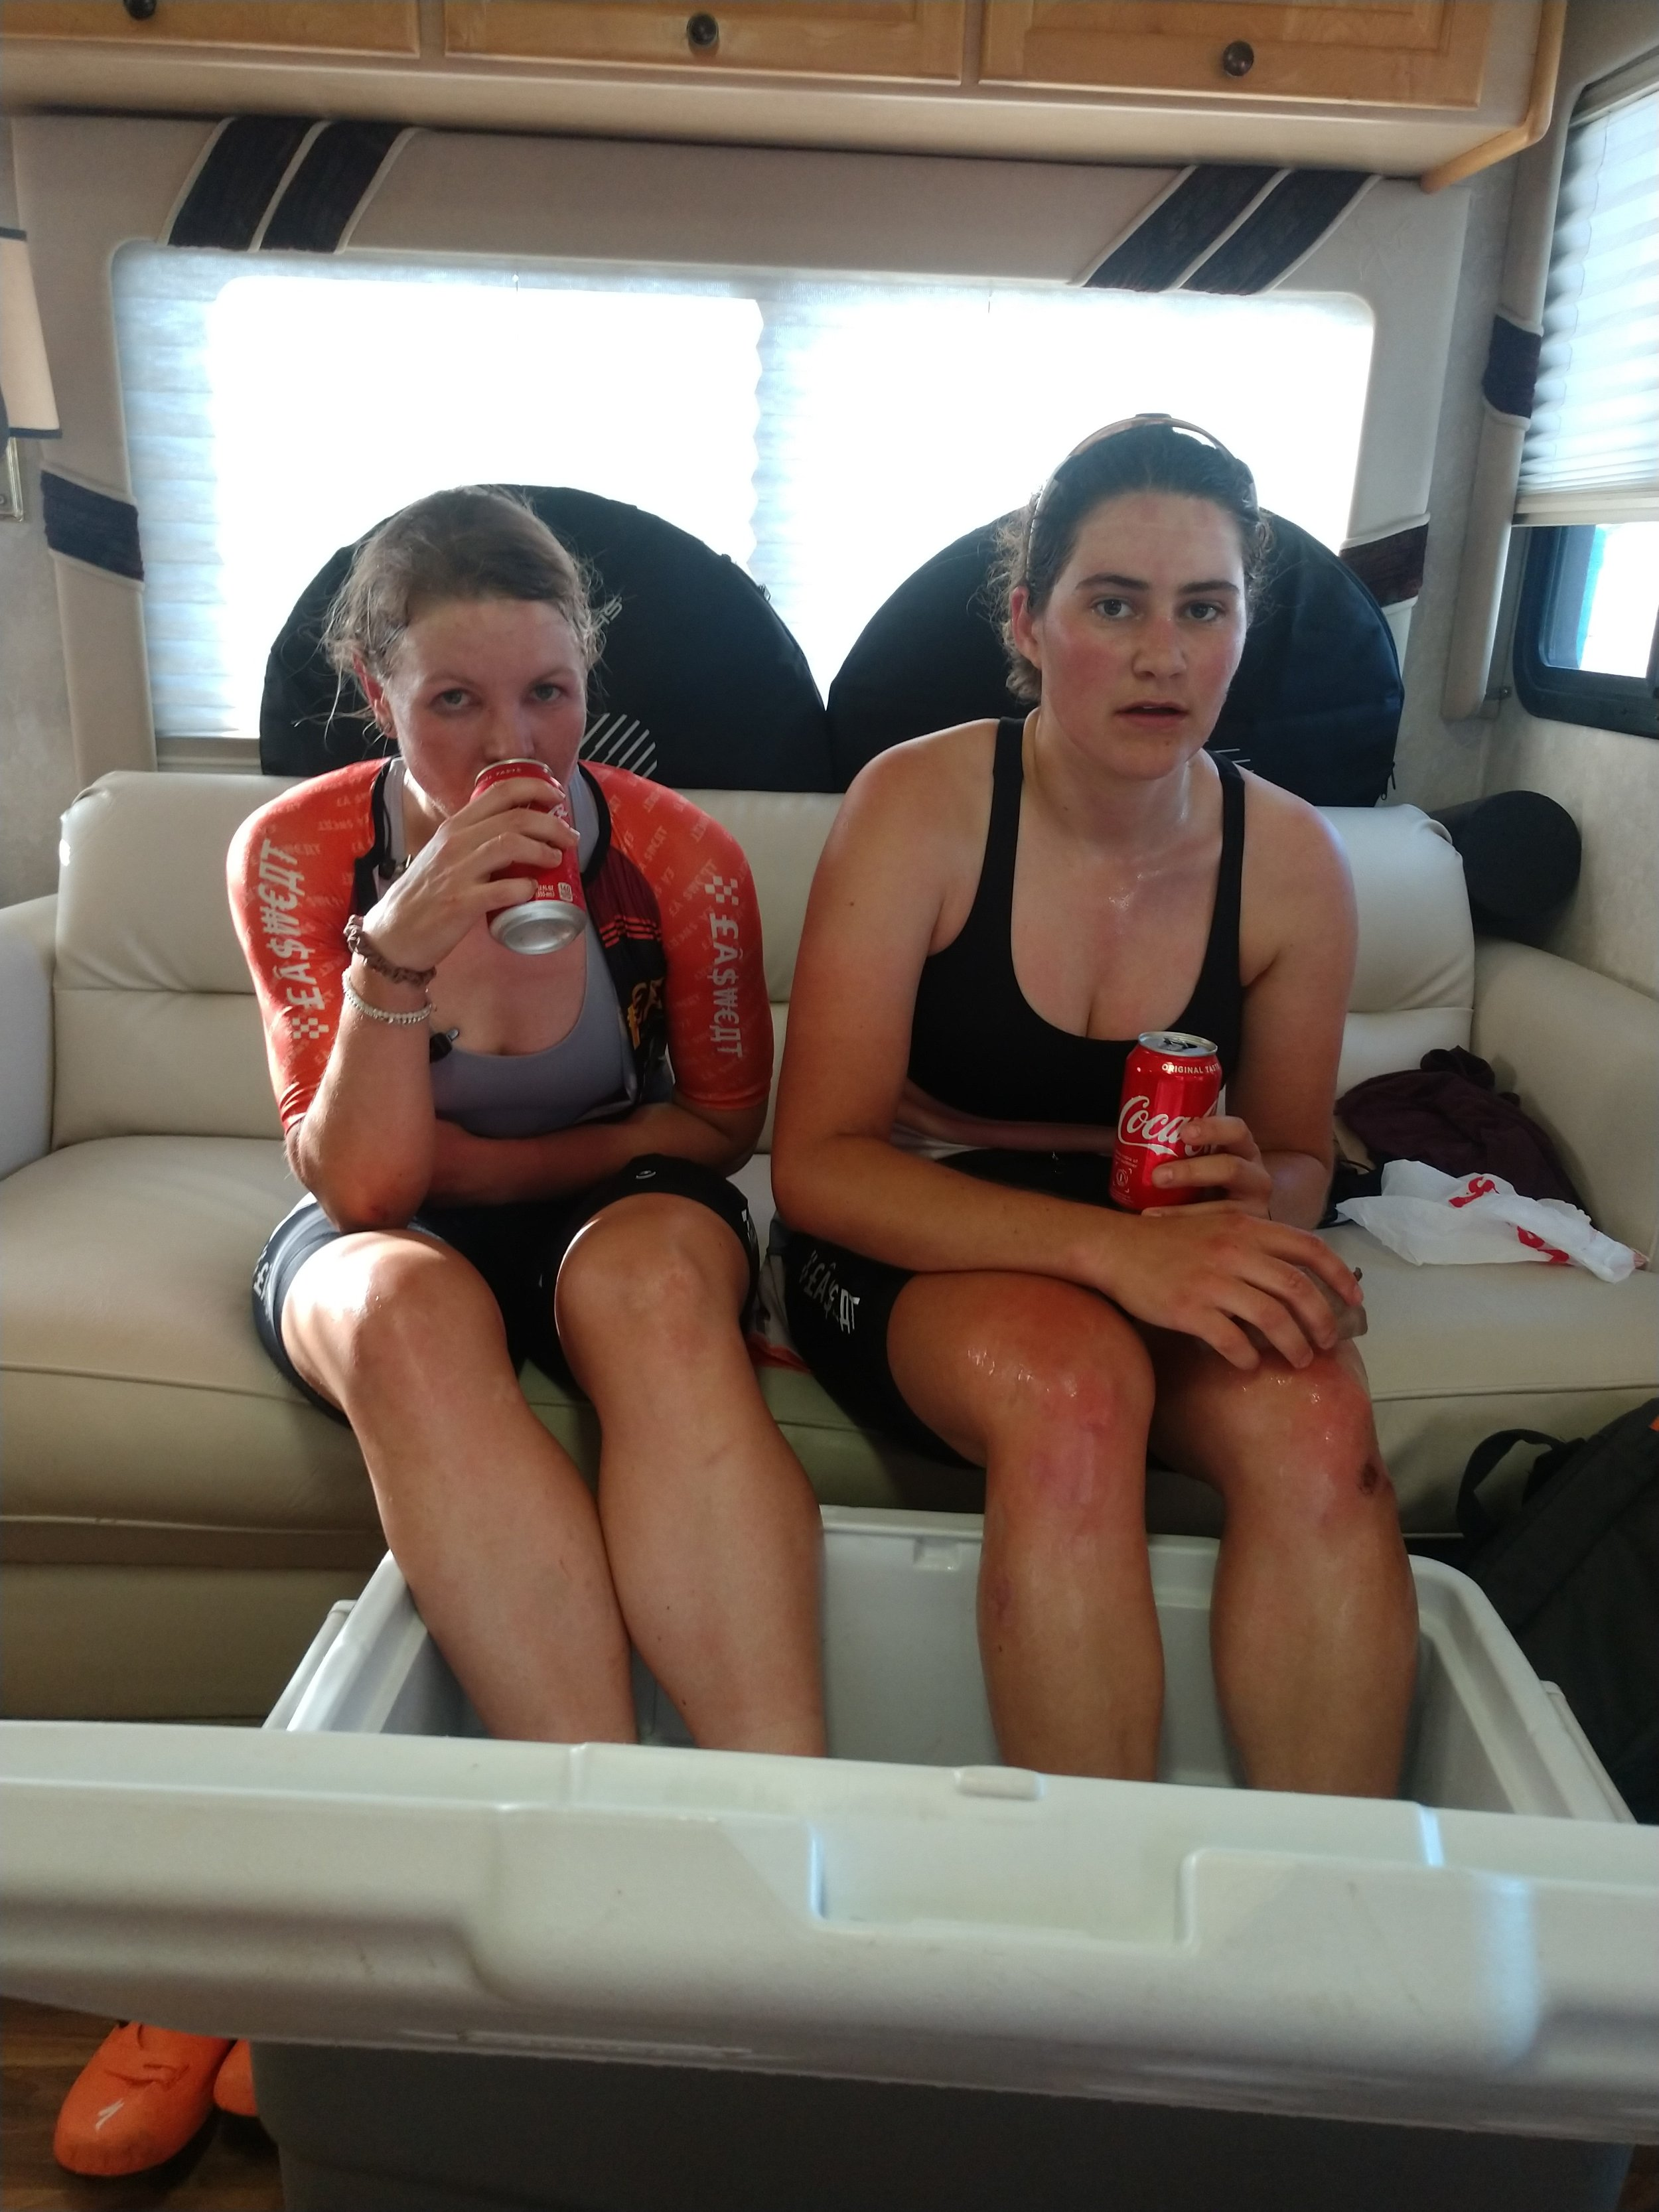 Sarah and Dani enjoying an ice bath and coke after surviving Cry Baby Hill!